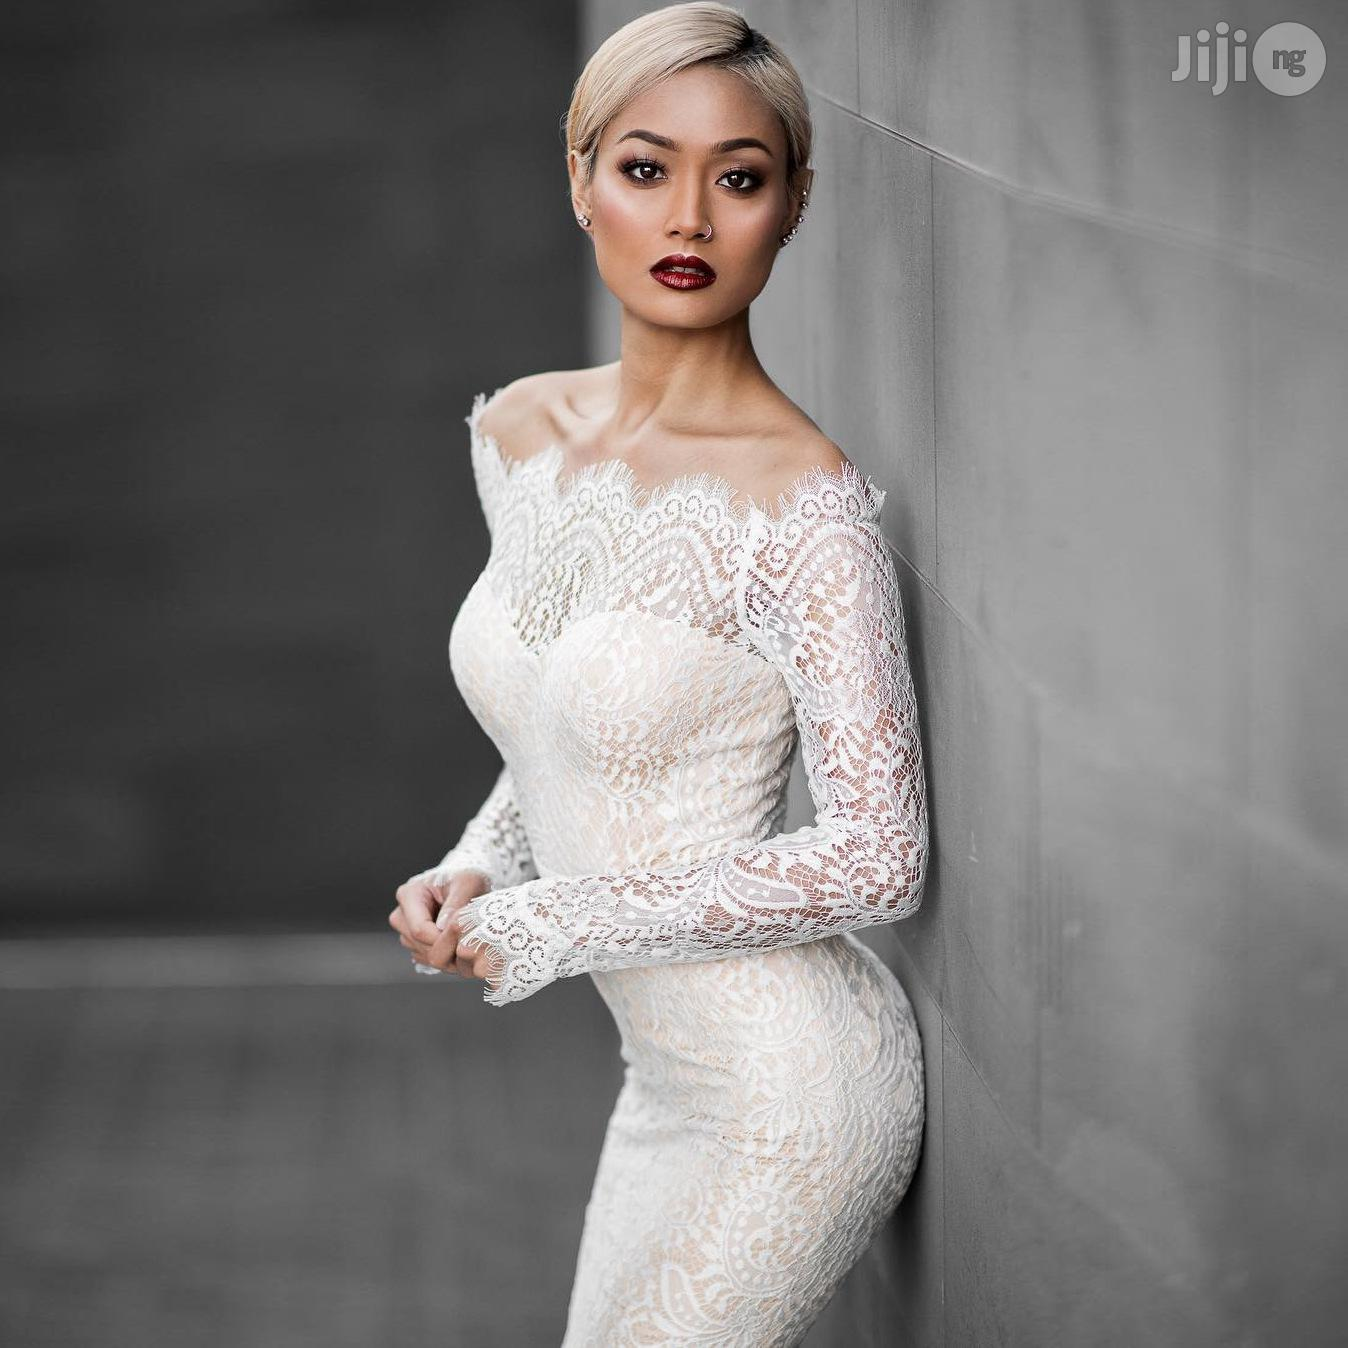 Long Sleeve Fishtail One-piece Lace Dress Female Fashion | Wedding Wear & Accessories for sale in Ikeja, Lagos State, Nigeria